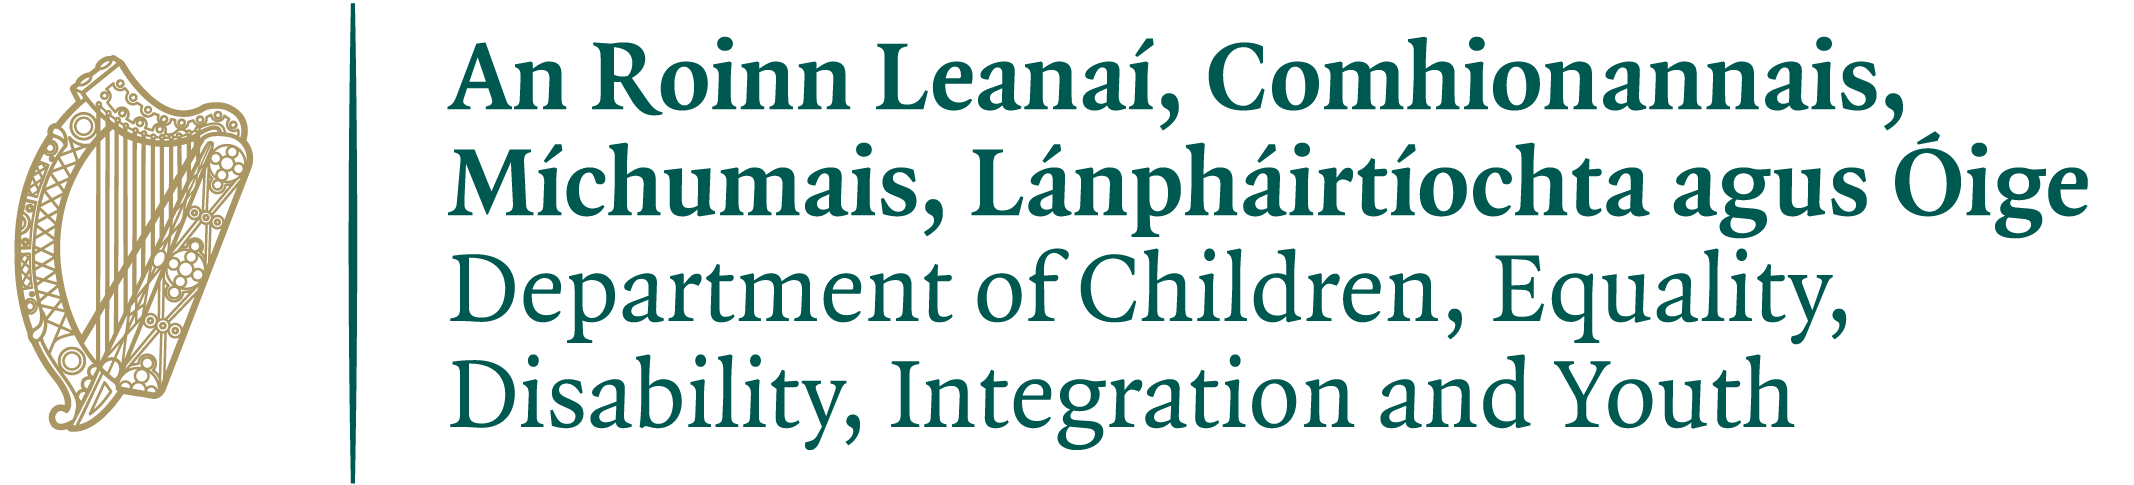 Department of Children Equality Disability Integration and Youth